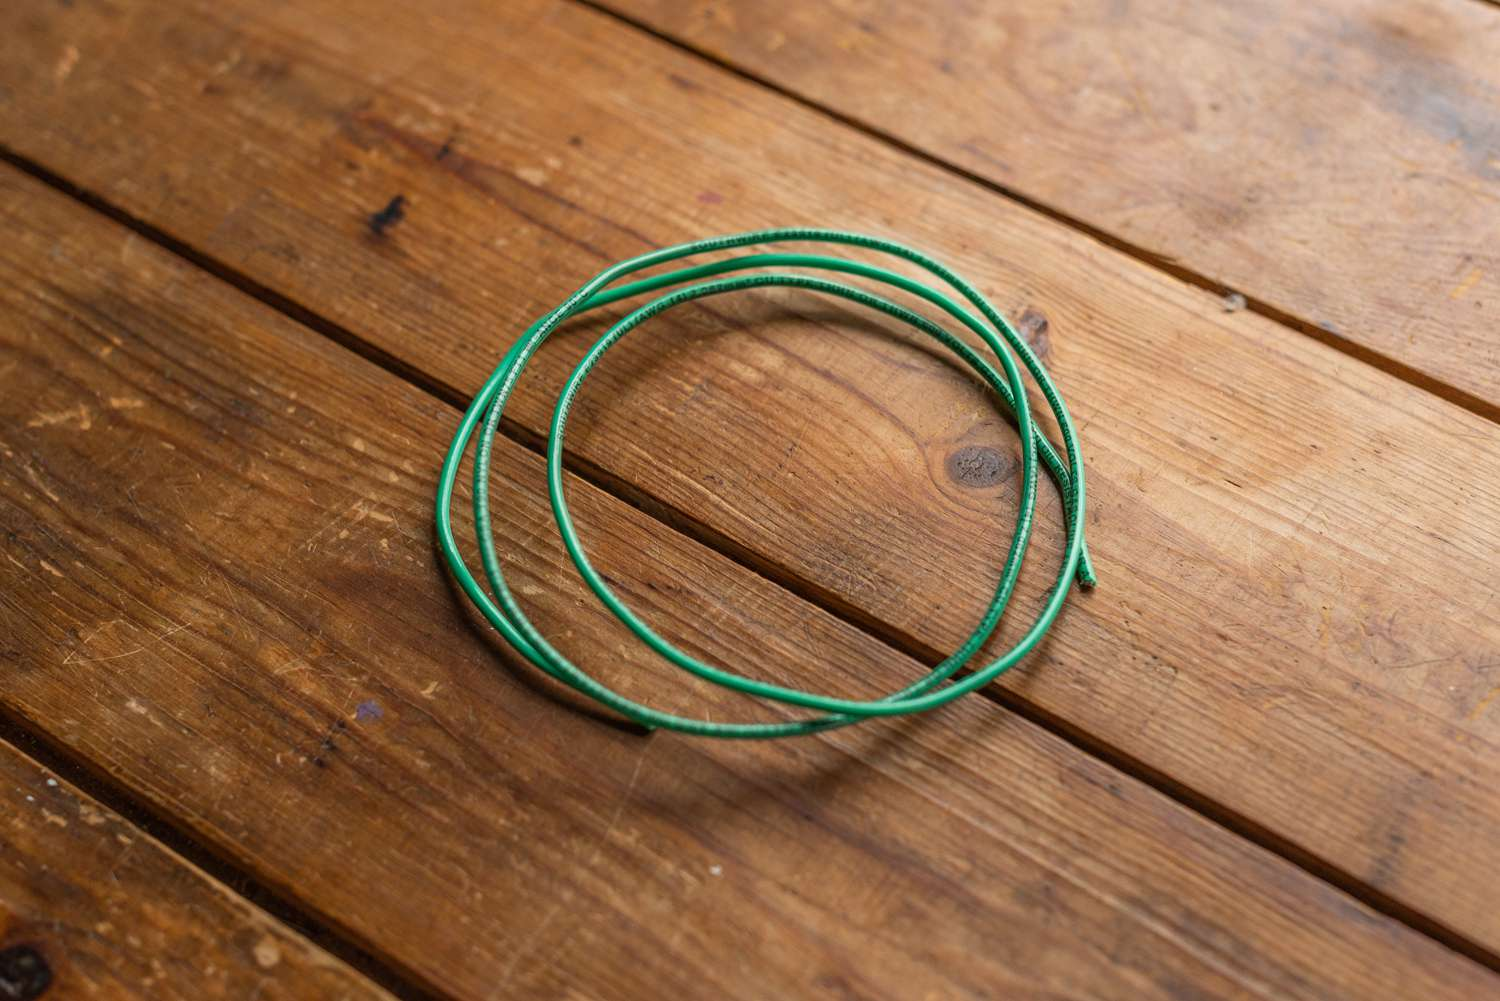 hight resolution of green wire insulation